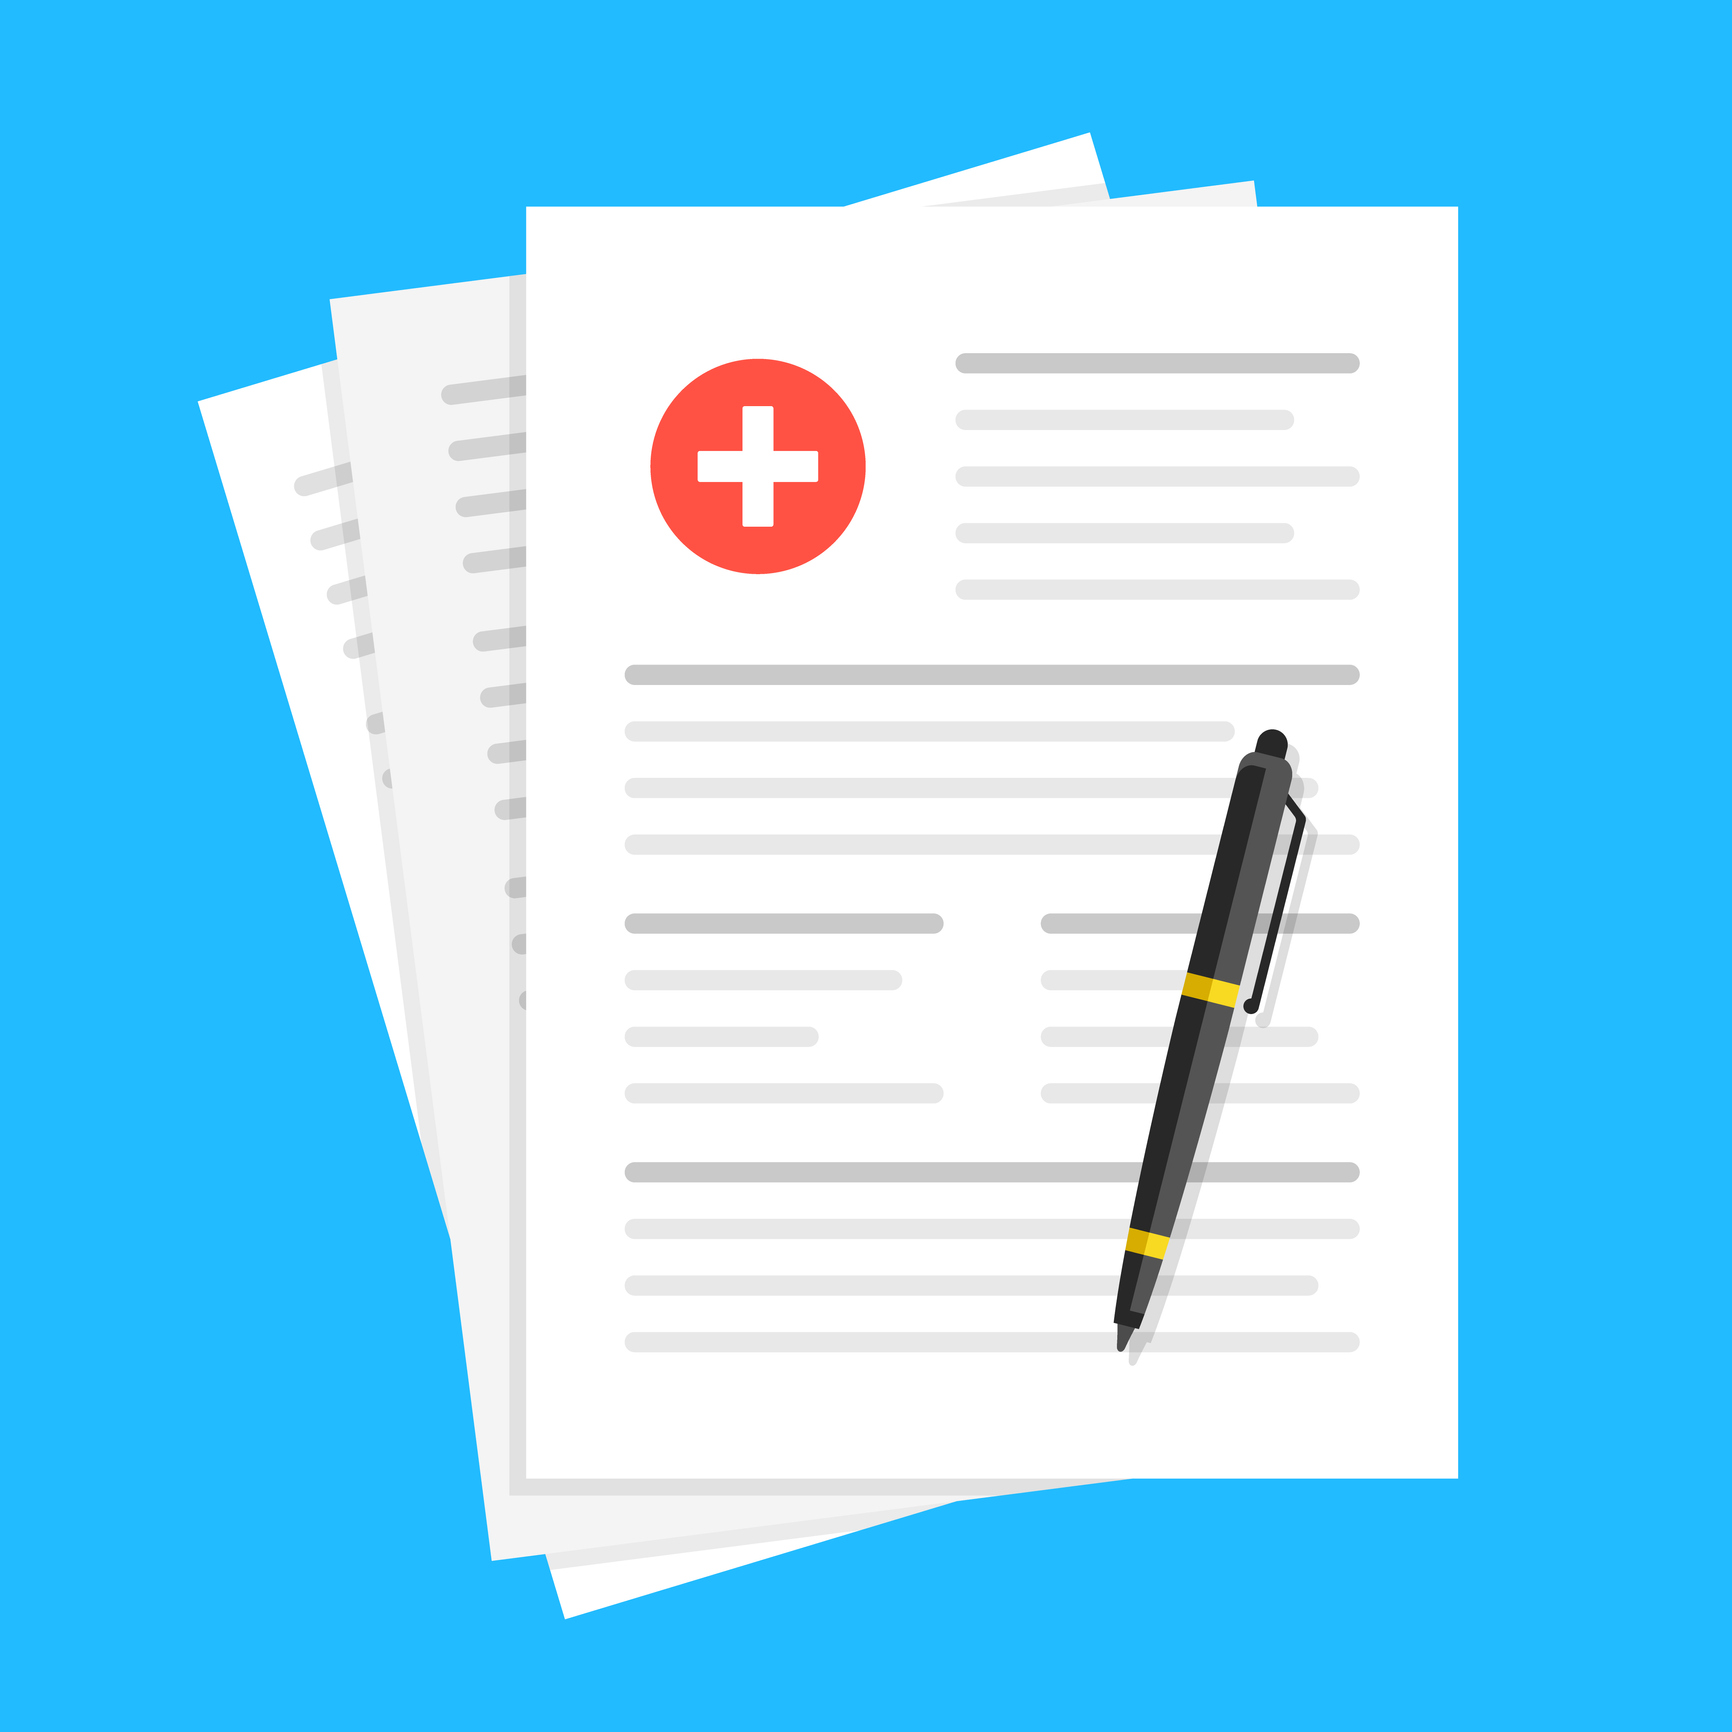 Medical report, medical document, health insurance concepts. Flat design. Vector illustration